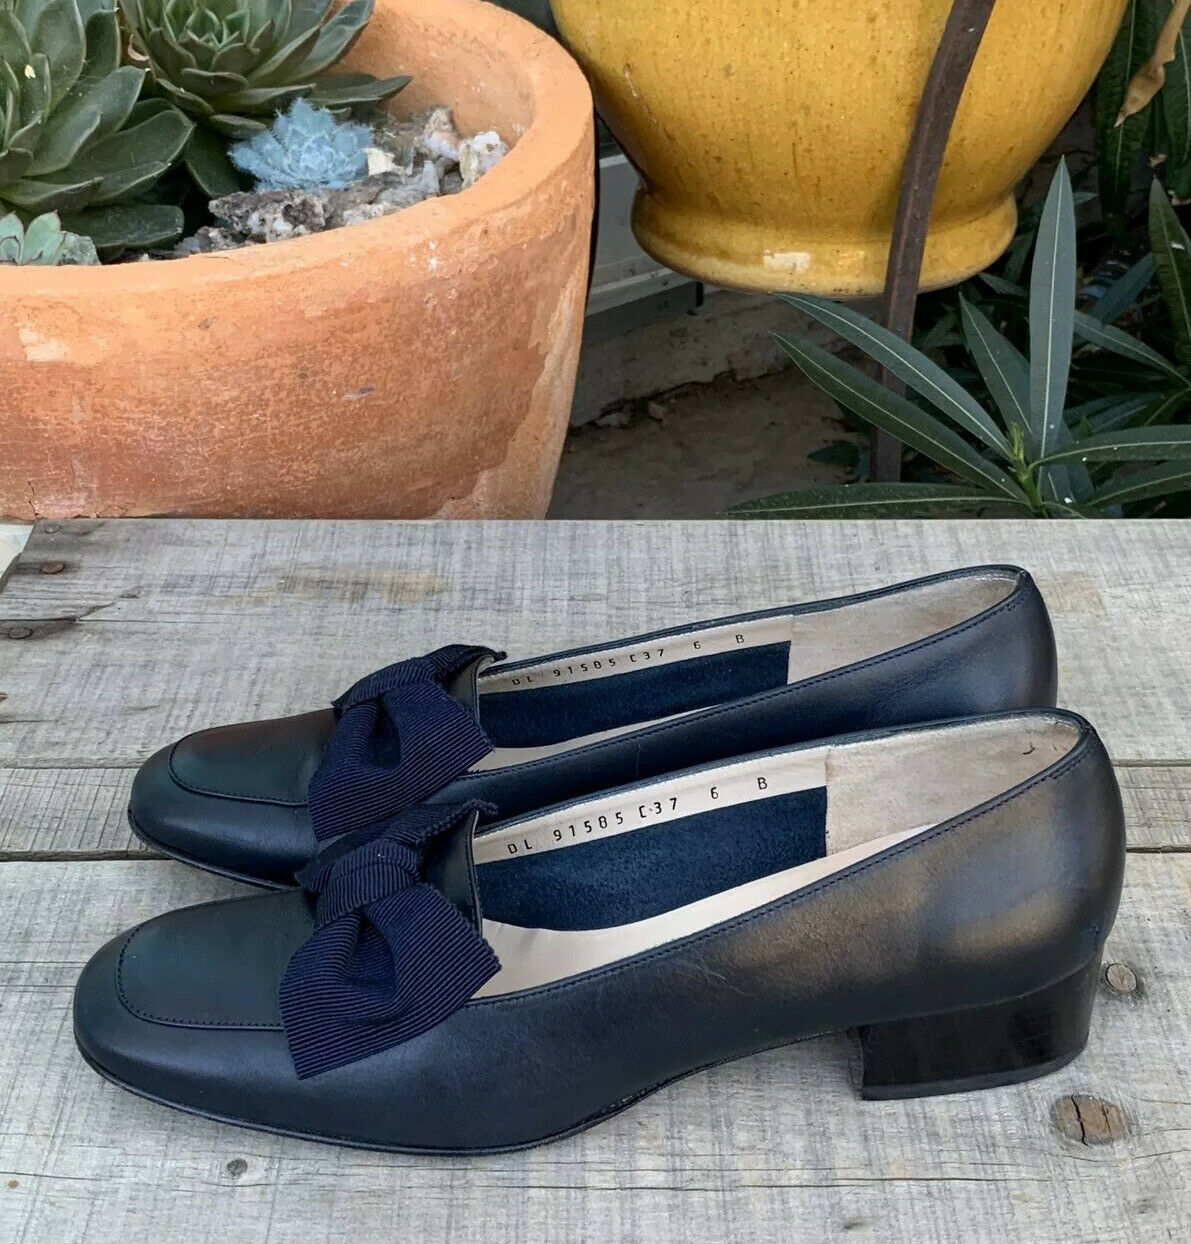 Salvatore Ferragamo Boutique Navy Blau Bow Dress schuhe damen's Größe 6 B Wedge